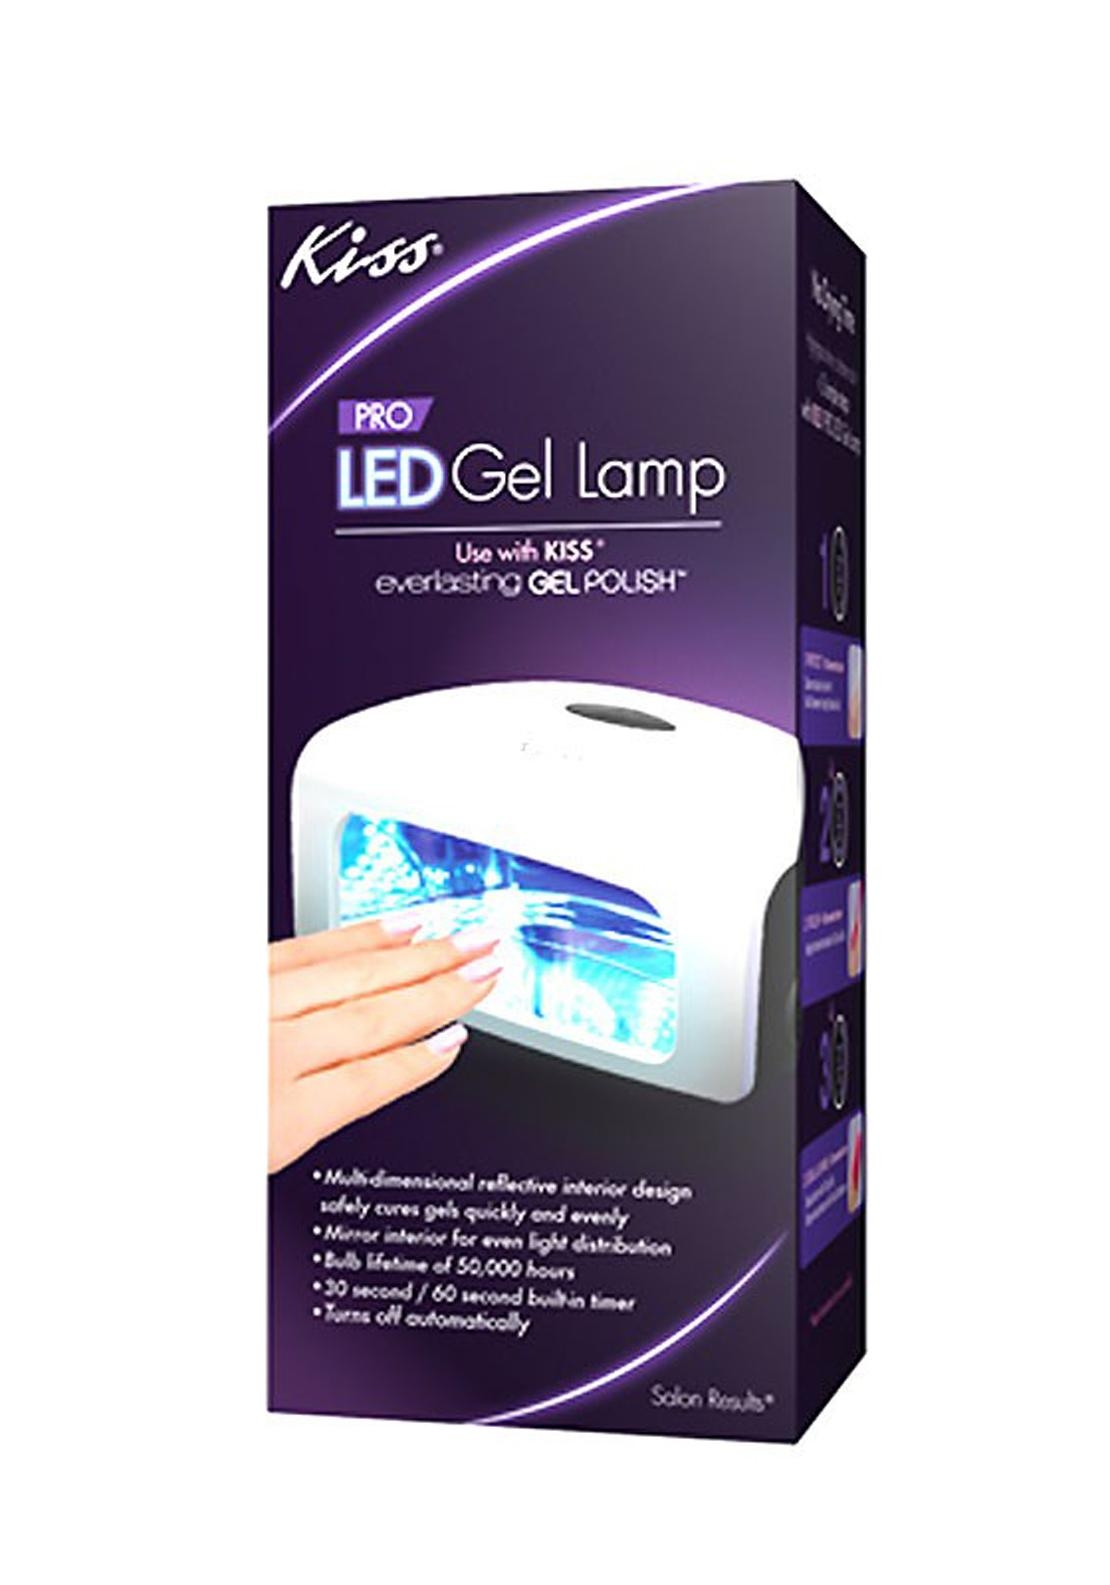 Kiss Pro LED Gel Lamp